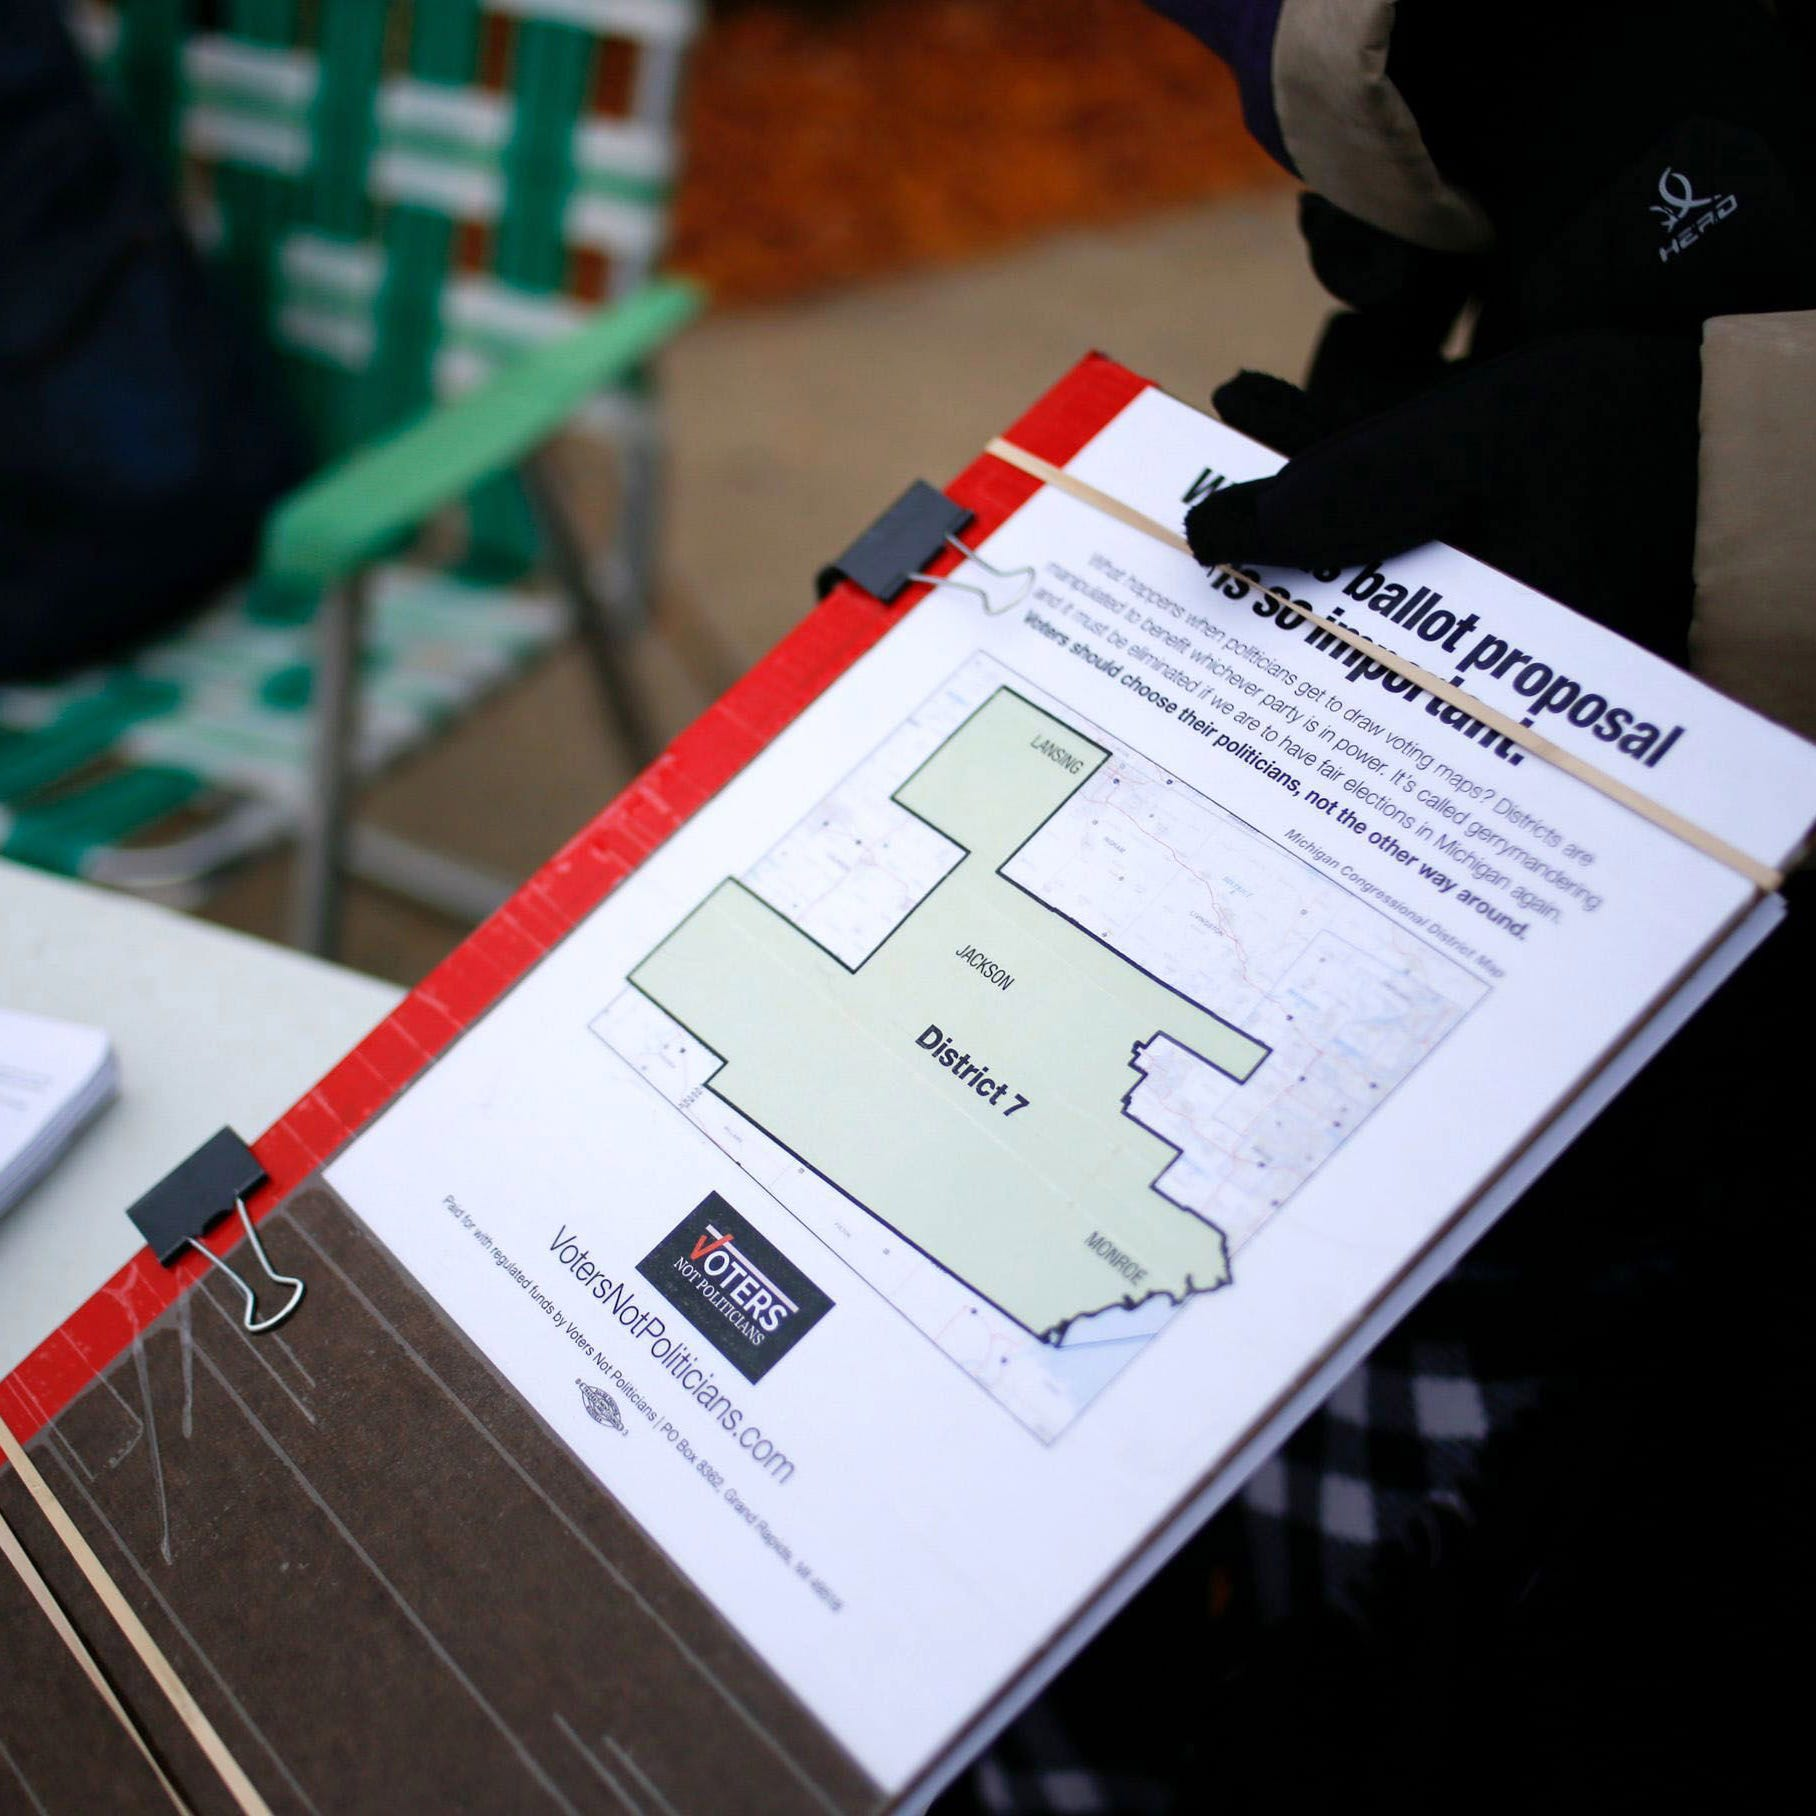 Forged signatures raise concerns about ballot petition efforts in Michigan